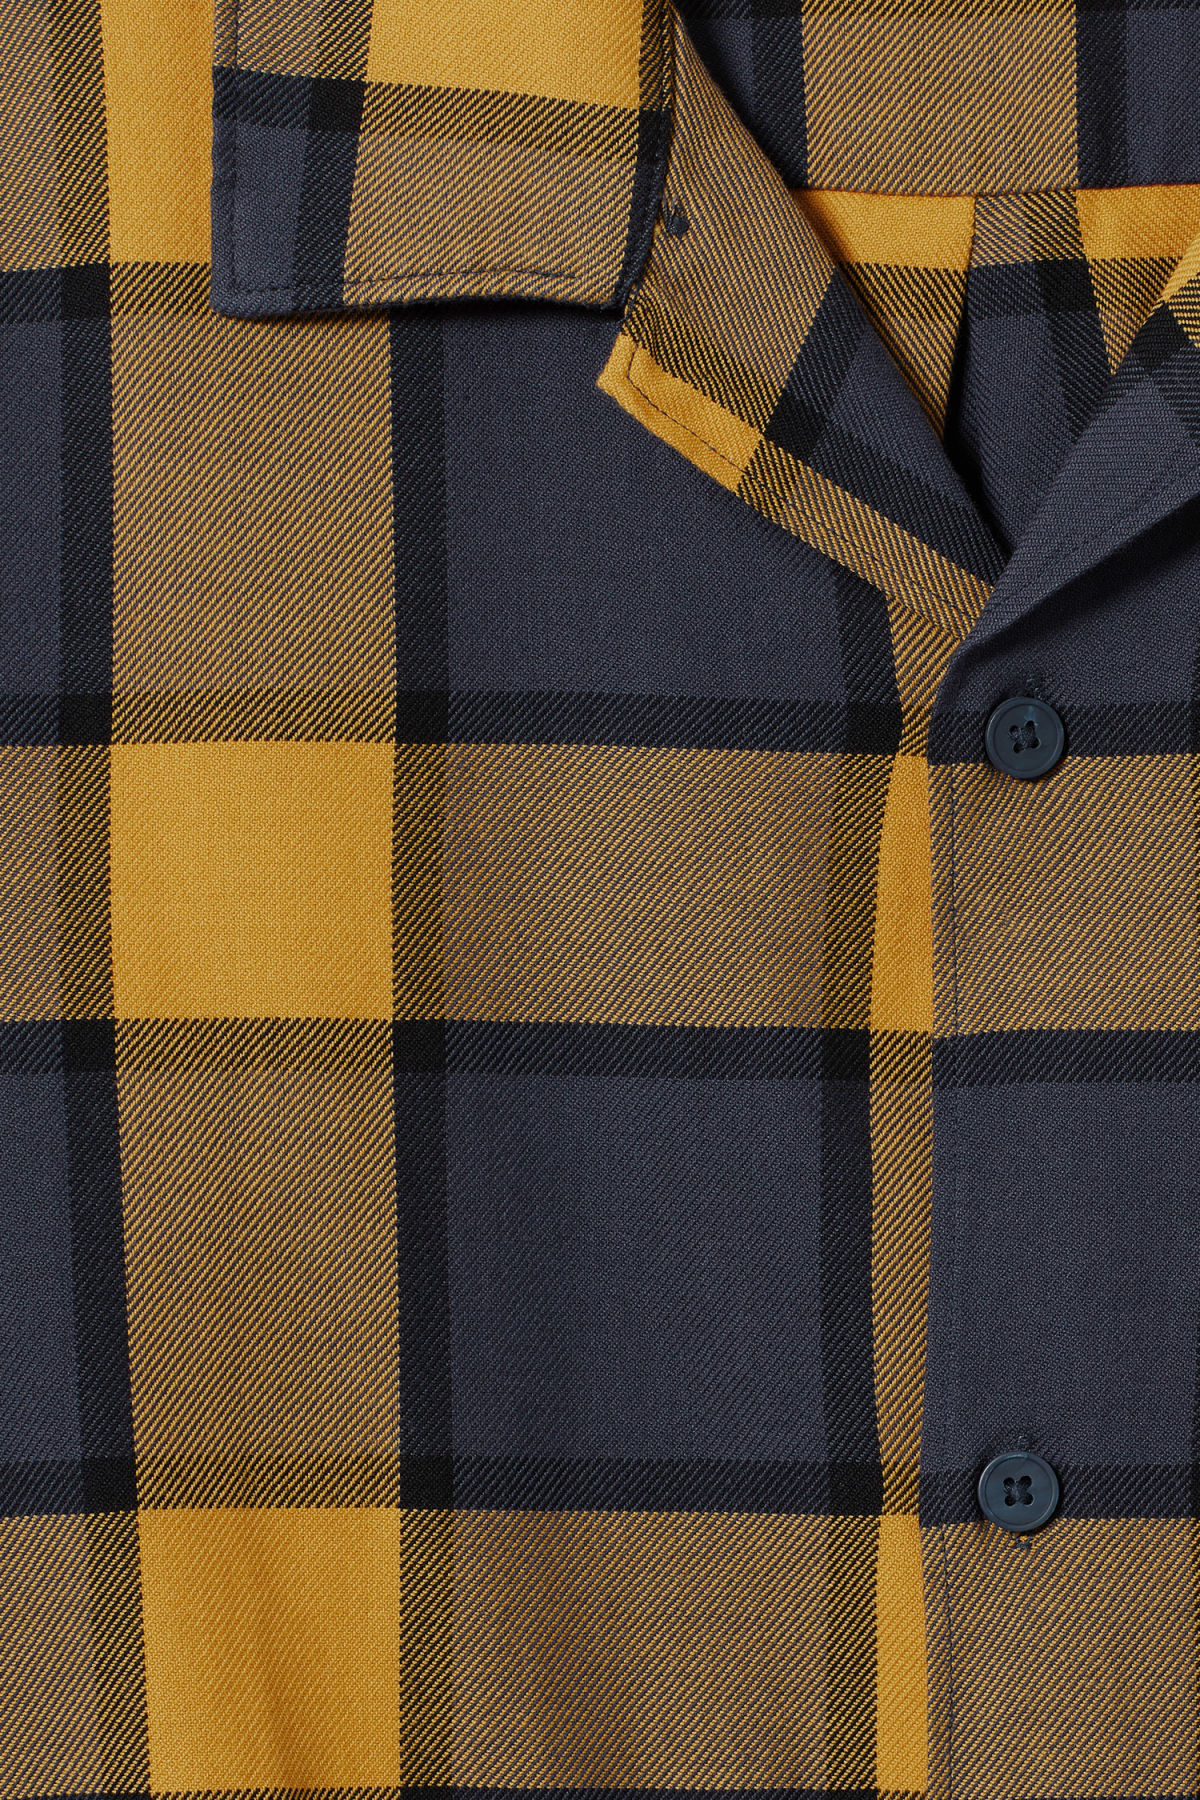 Detailed image of Weekday malte check shirt in blue